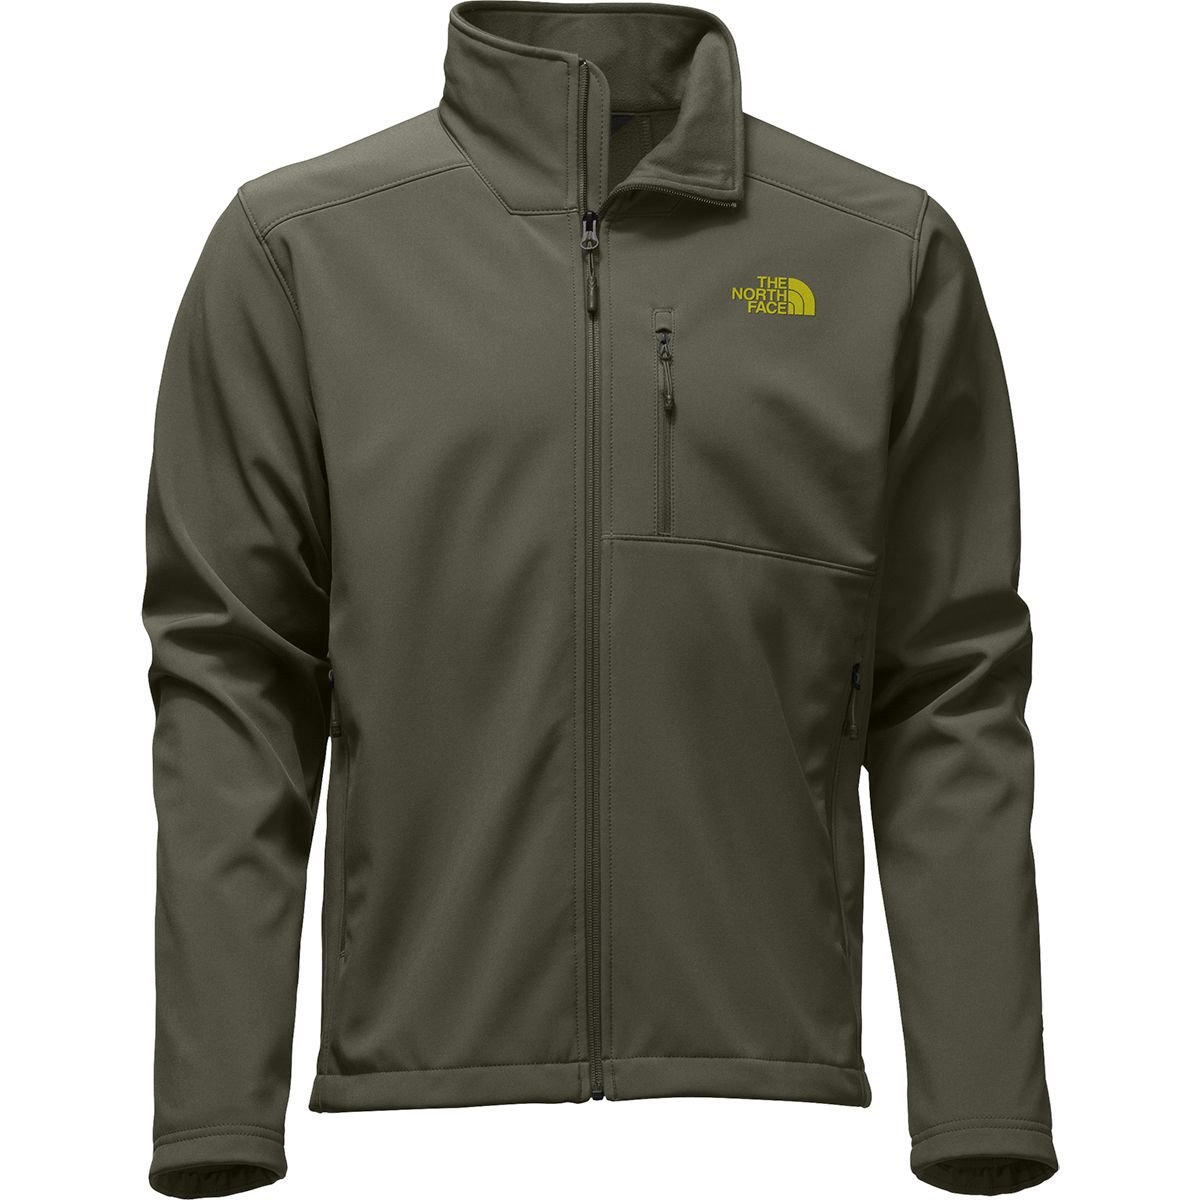 The North Face Apex Bionic Soft Shell Jacket – Men 's B072R6ZNXD S|グレープリーフ(Grape Leaf) グレープリーフ(Grape Leaf) S